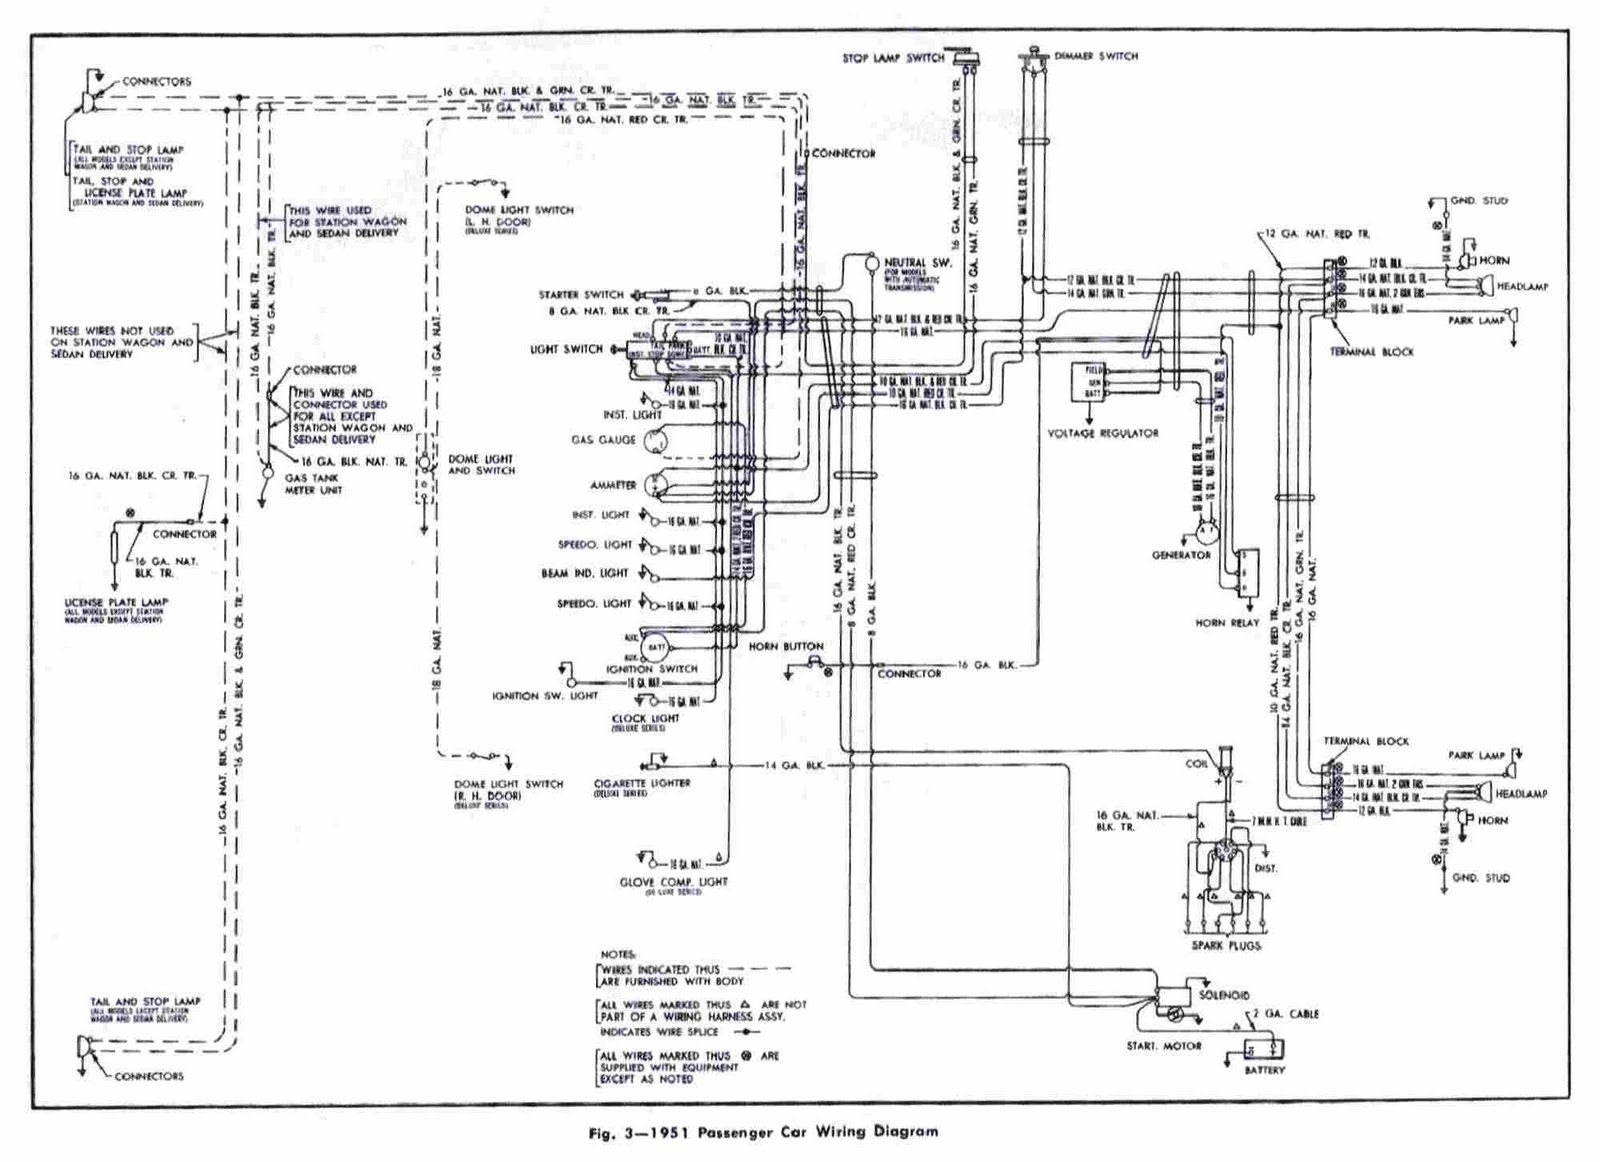 wiring diagram for 55 chevy bel air wiring diagram for 1954 chevy bel air chevrolet passenger car 1951 wiring diagram all about